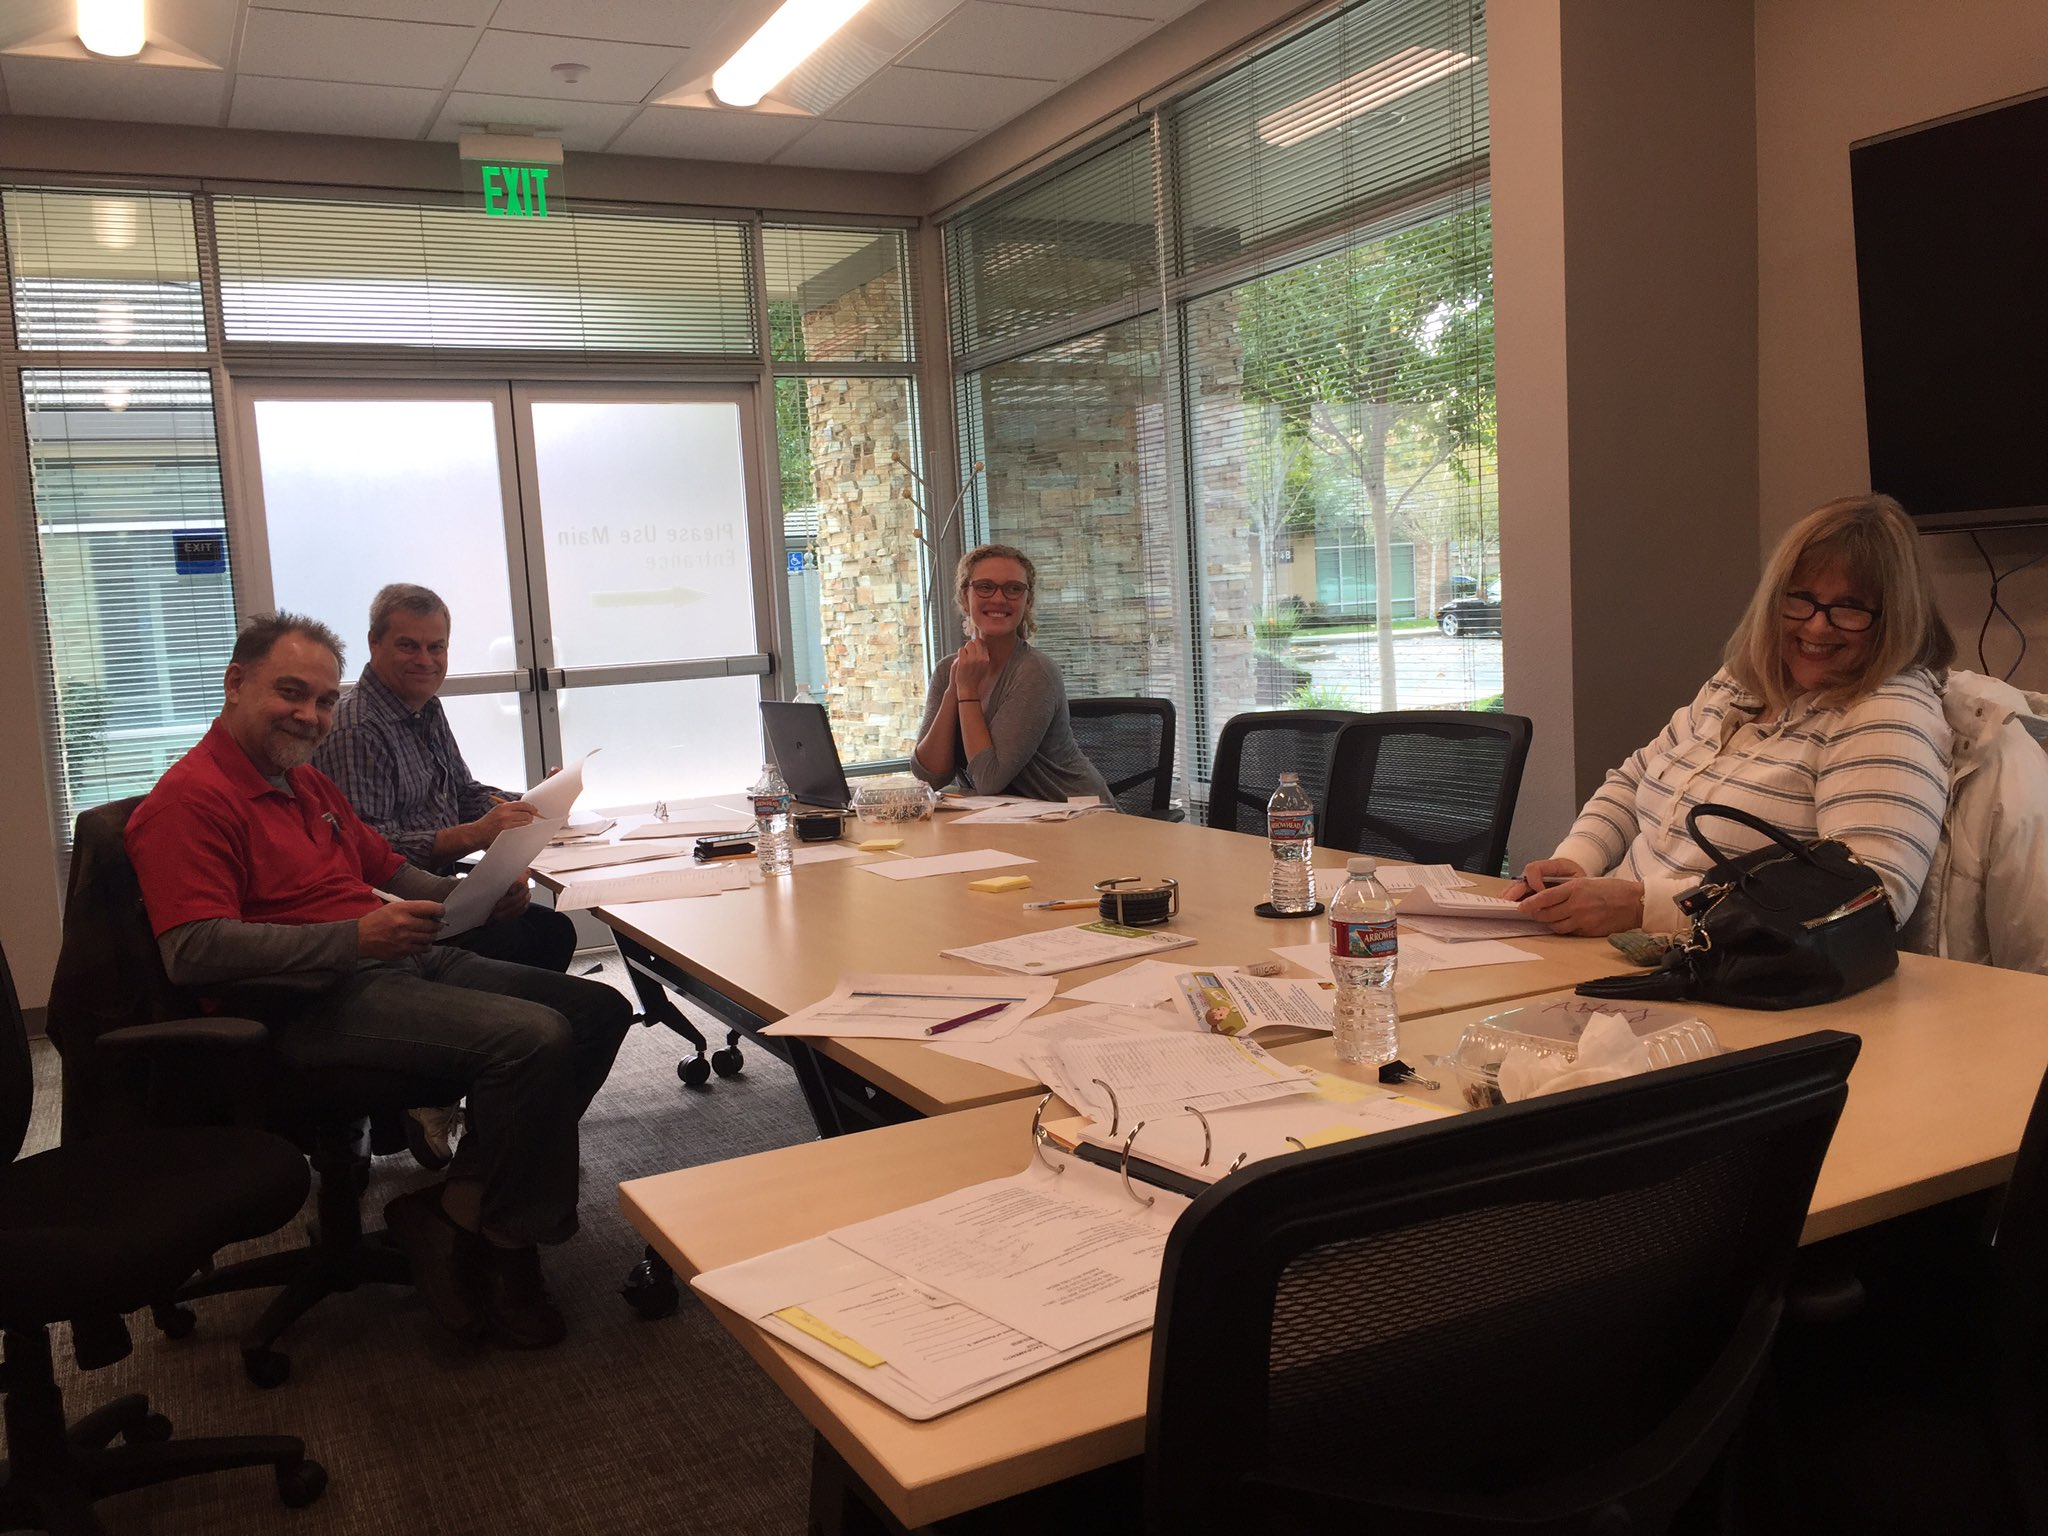 We are lucky to have a community that supports #50Bikes2017. Our selection committee is hard at work today @NatomasChamber #natomasbikeshop https://t.co/ysRJykPk9N